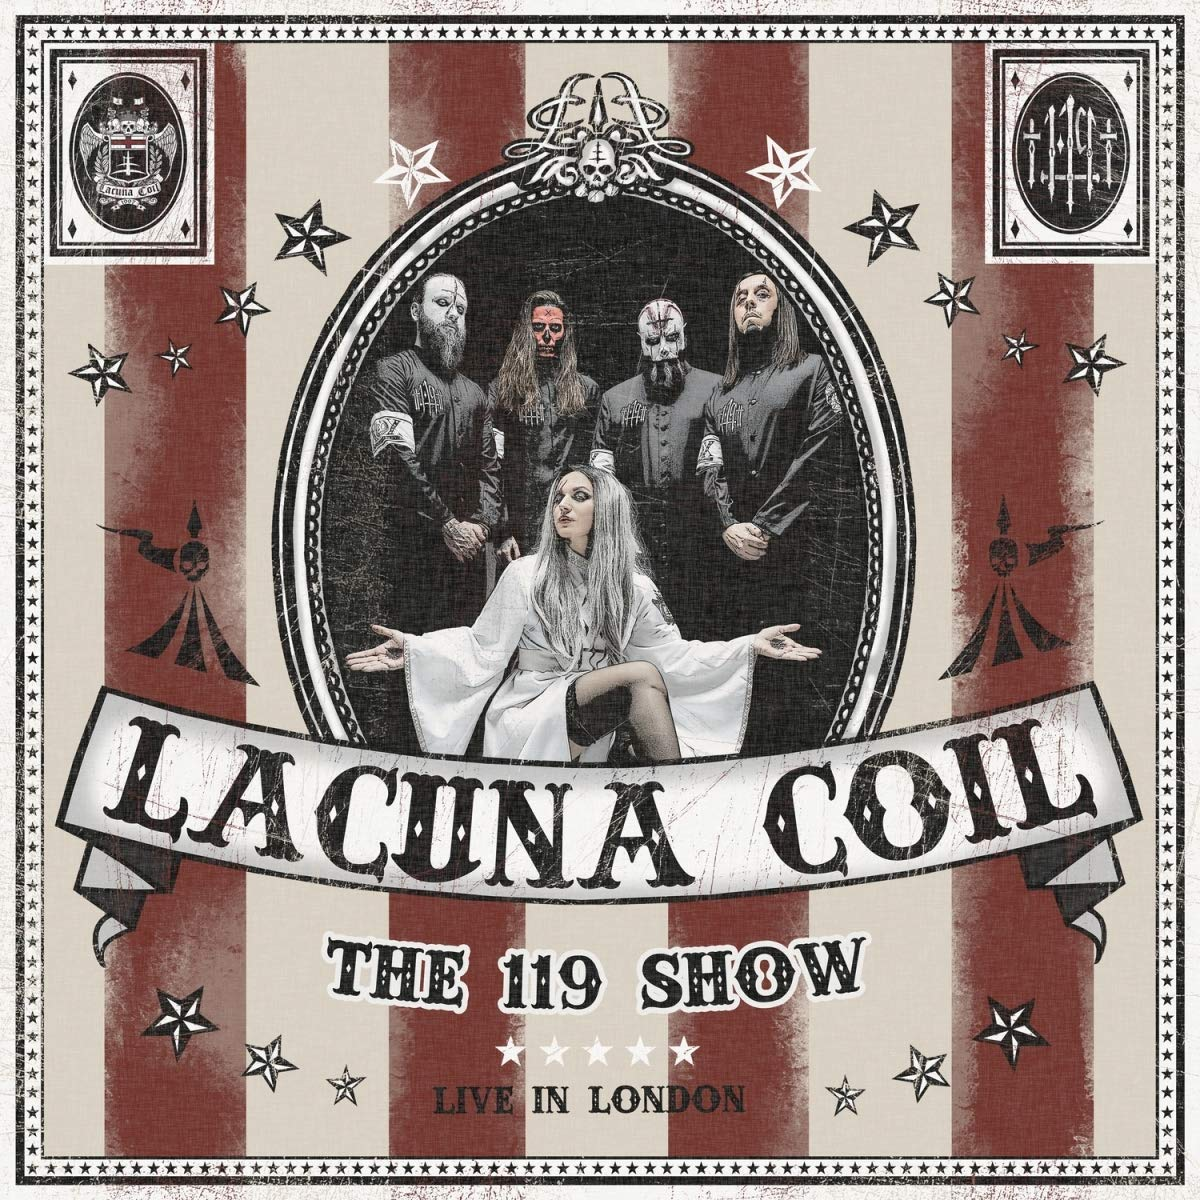 LACUNA COIL - 119 SHOW: LIVE IN LONDON (2 CD + DVD) (CD)